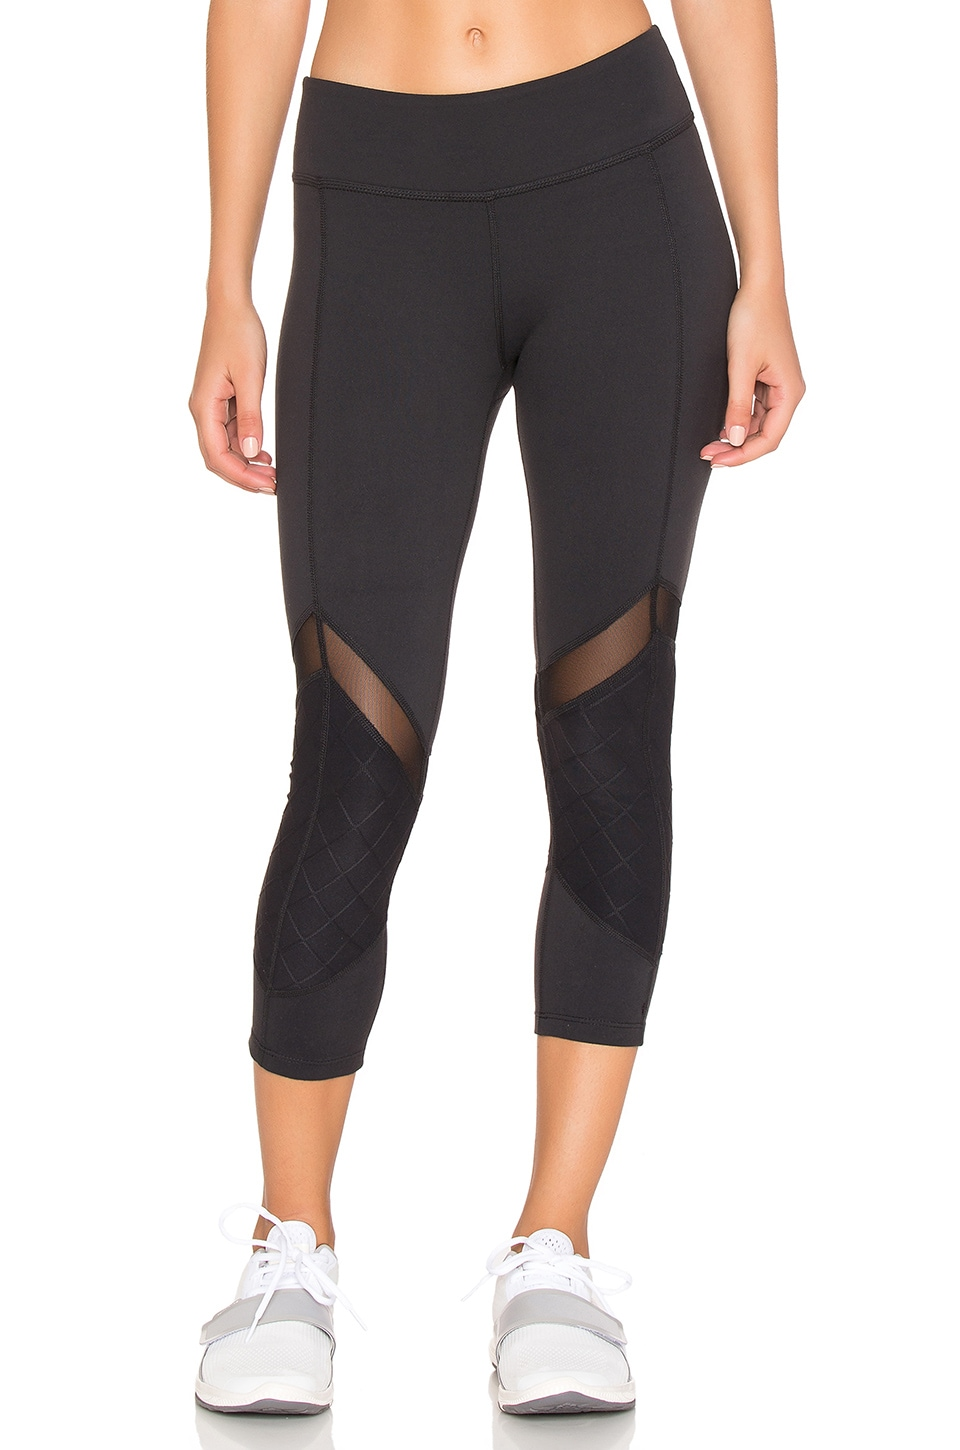 Beyond Yoga Quilted Arrow Mesh Capri Legging in Black